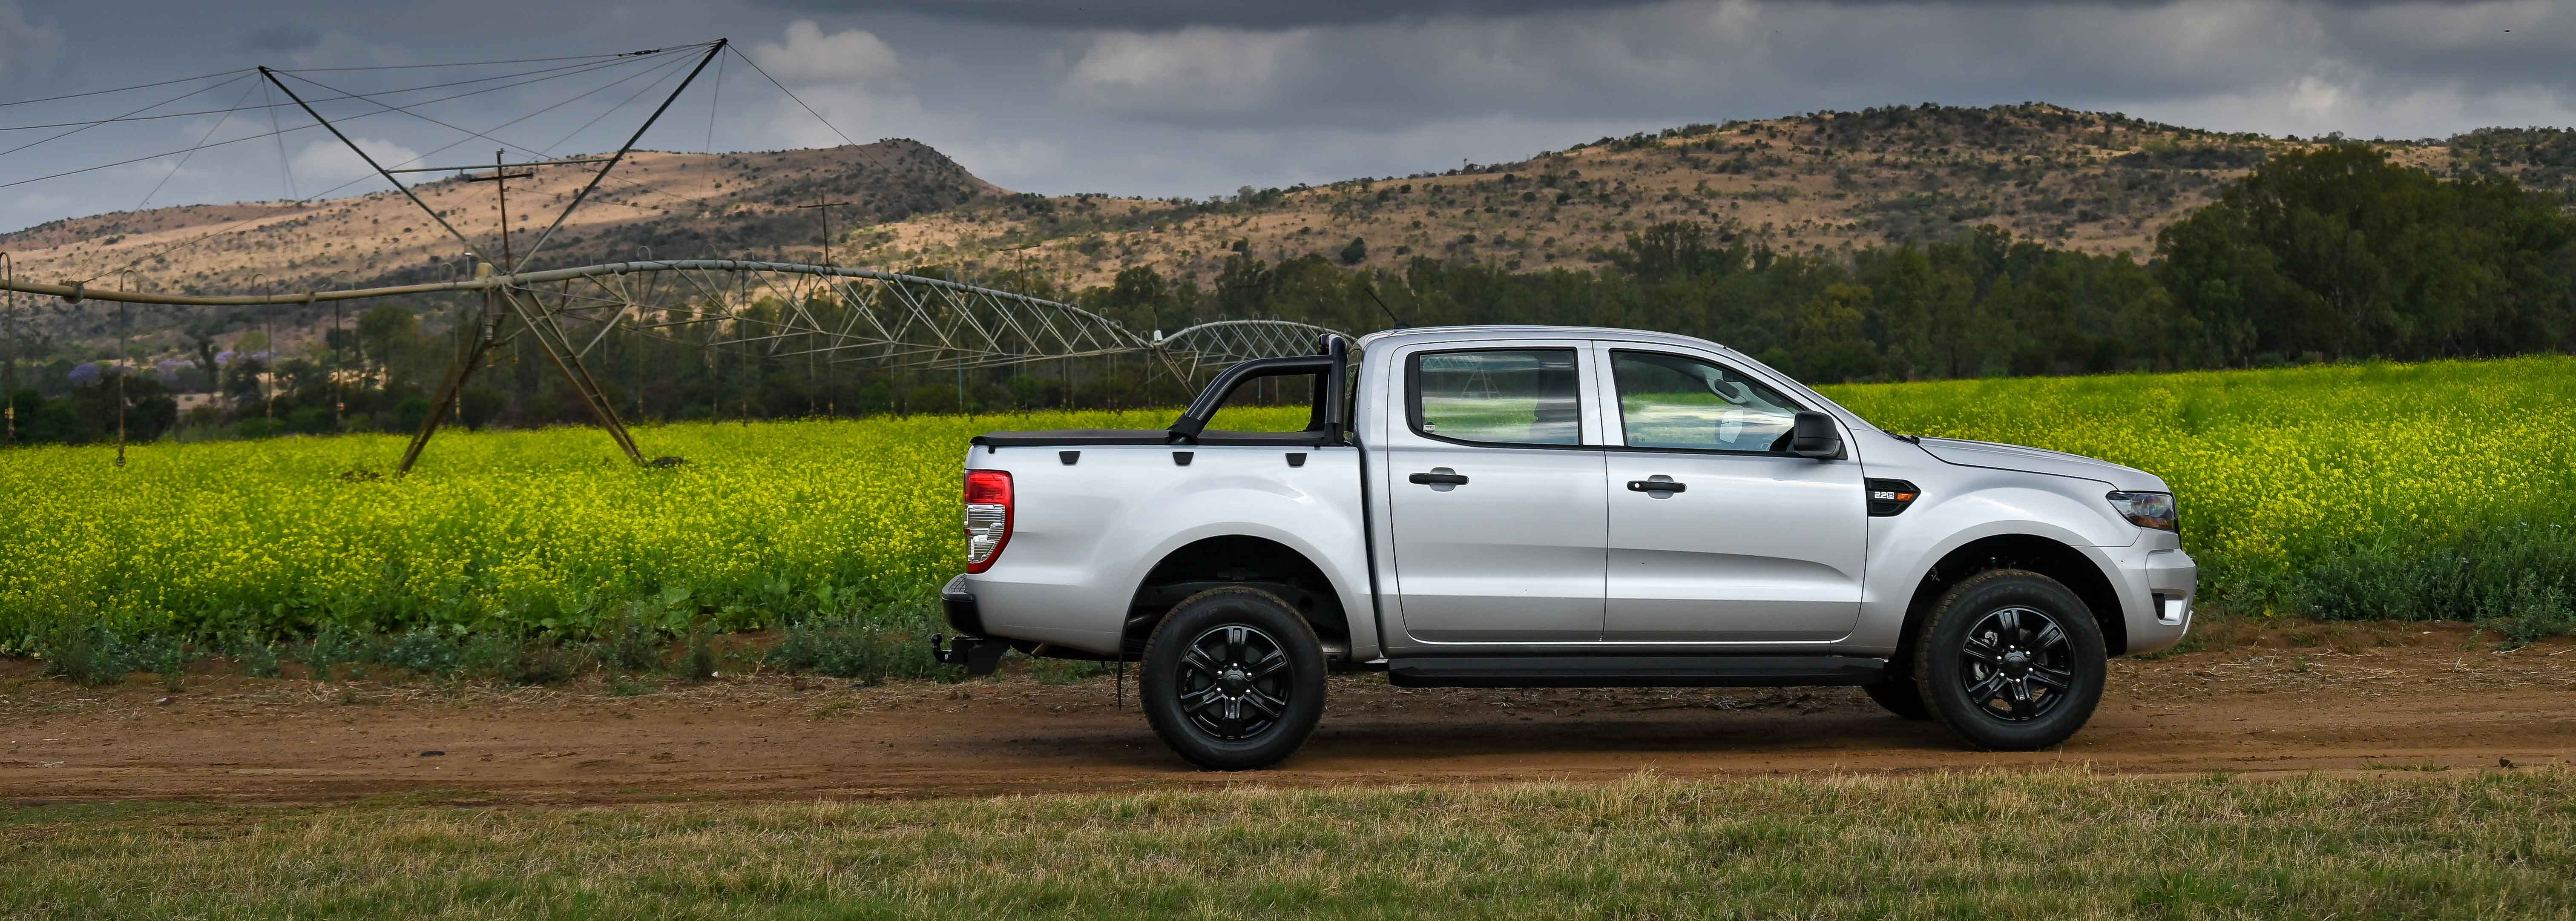 Ford Ranger XL offers great bang for the buck